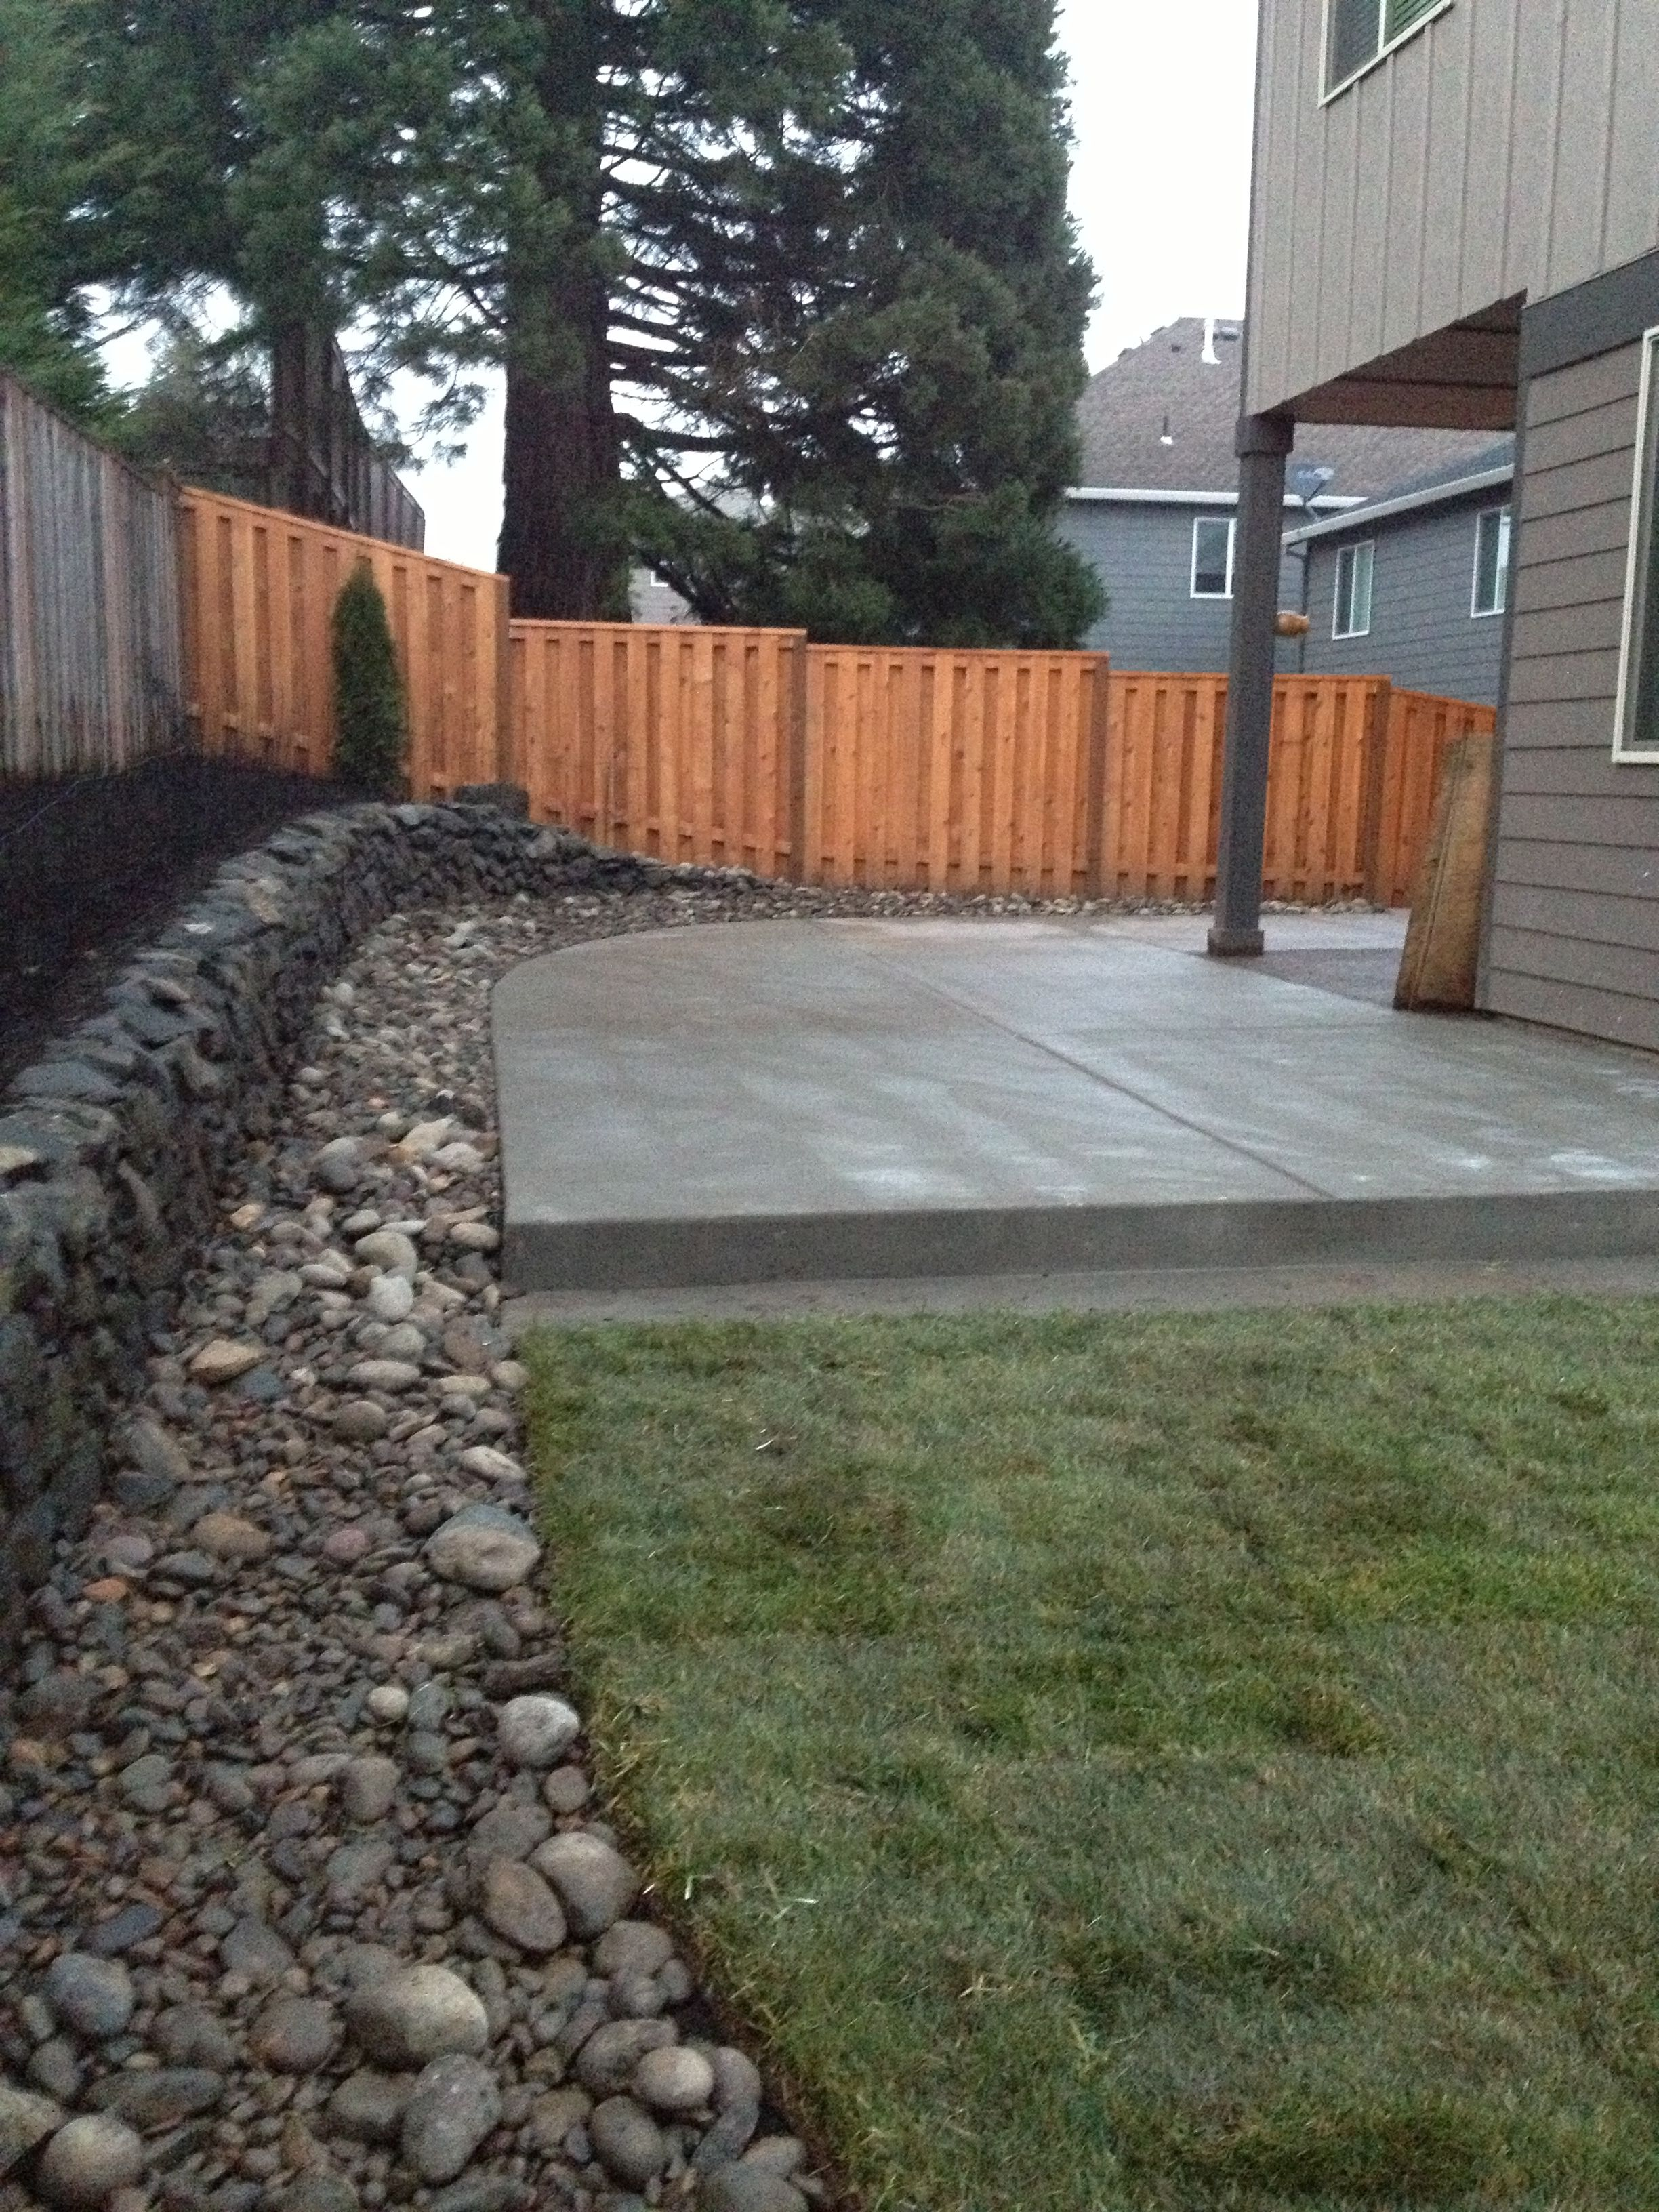 Attirant Concrete Patio, River Rock Border With Drainage And Lawn